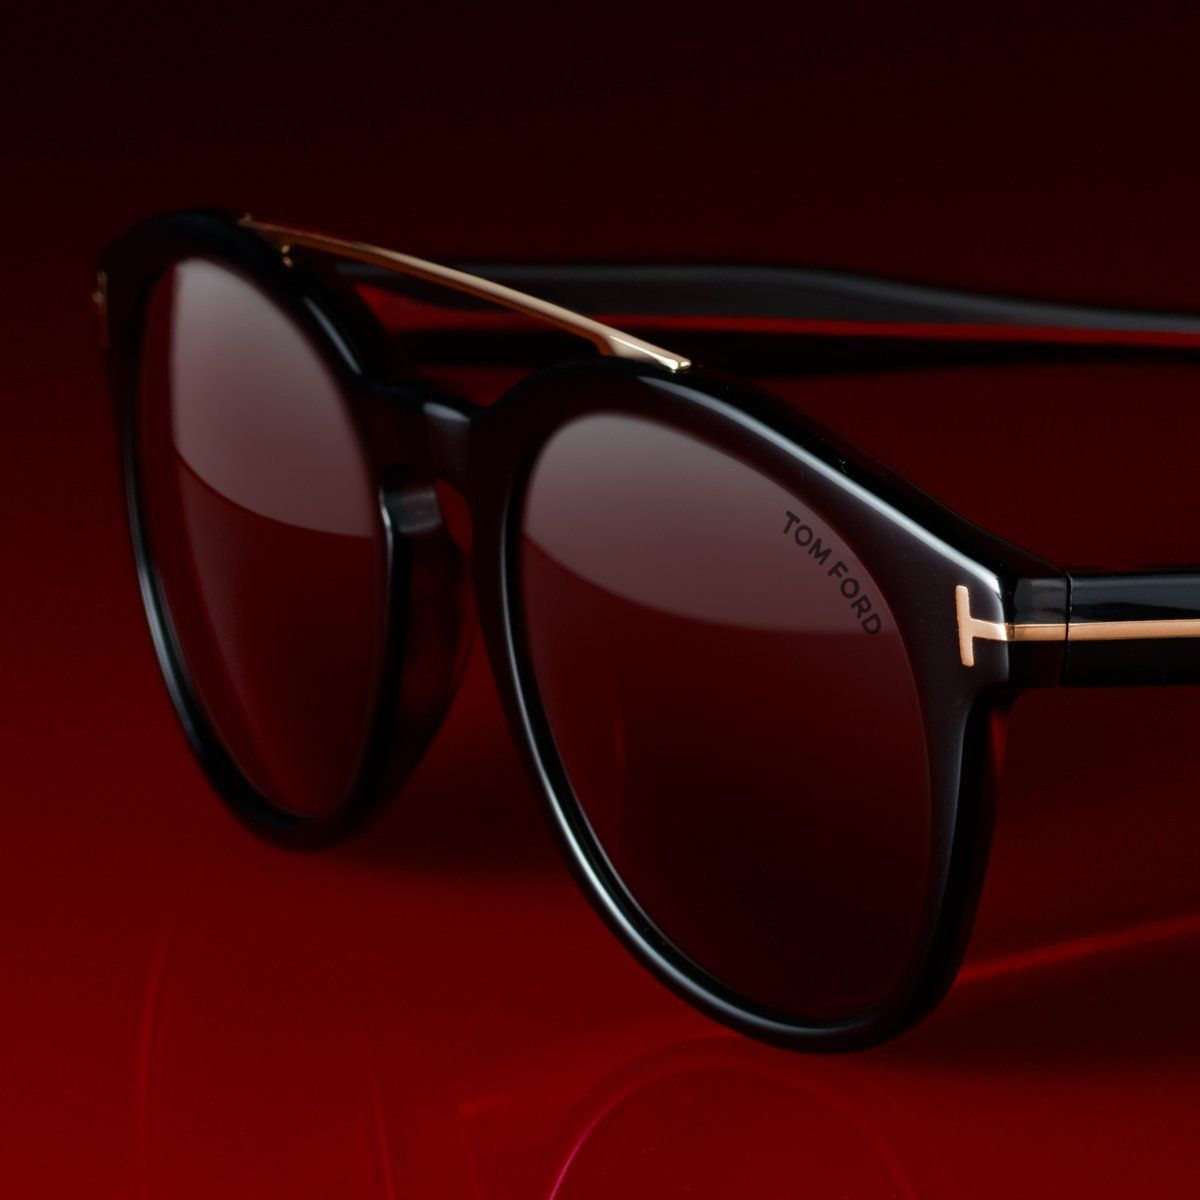 0dccb7a2866 Tom Ford Newman sunglasses.  style  glasses